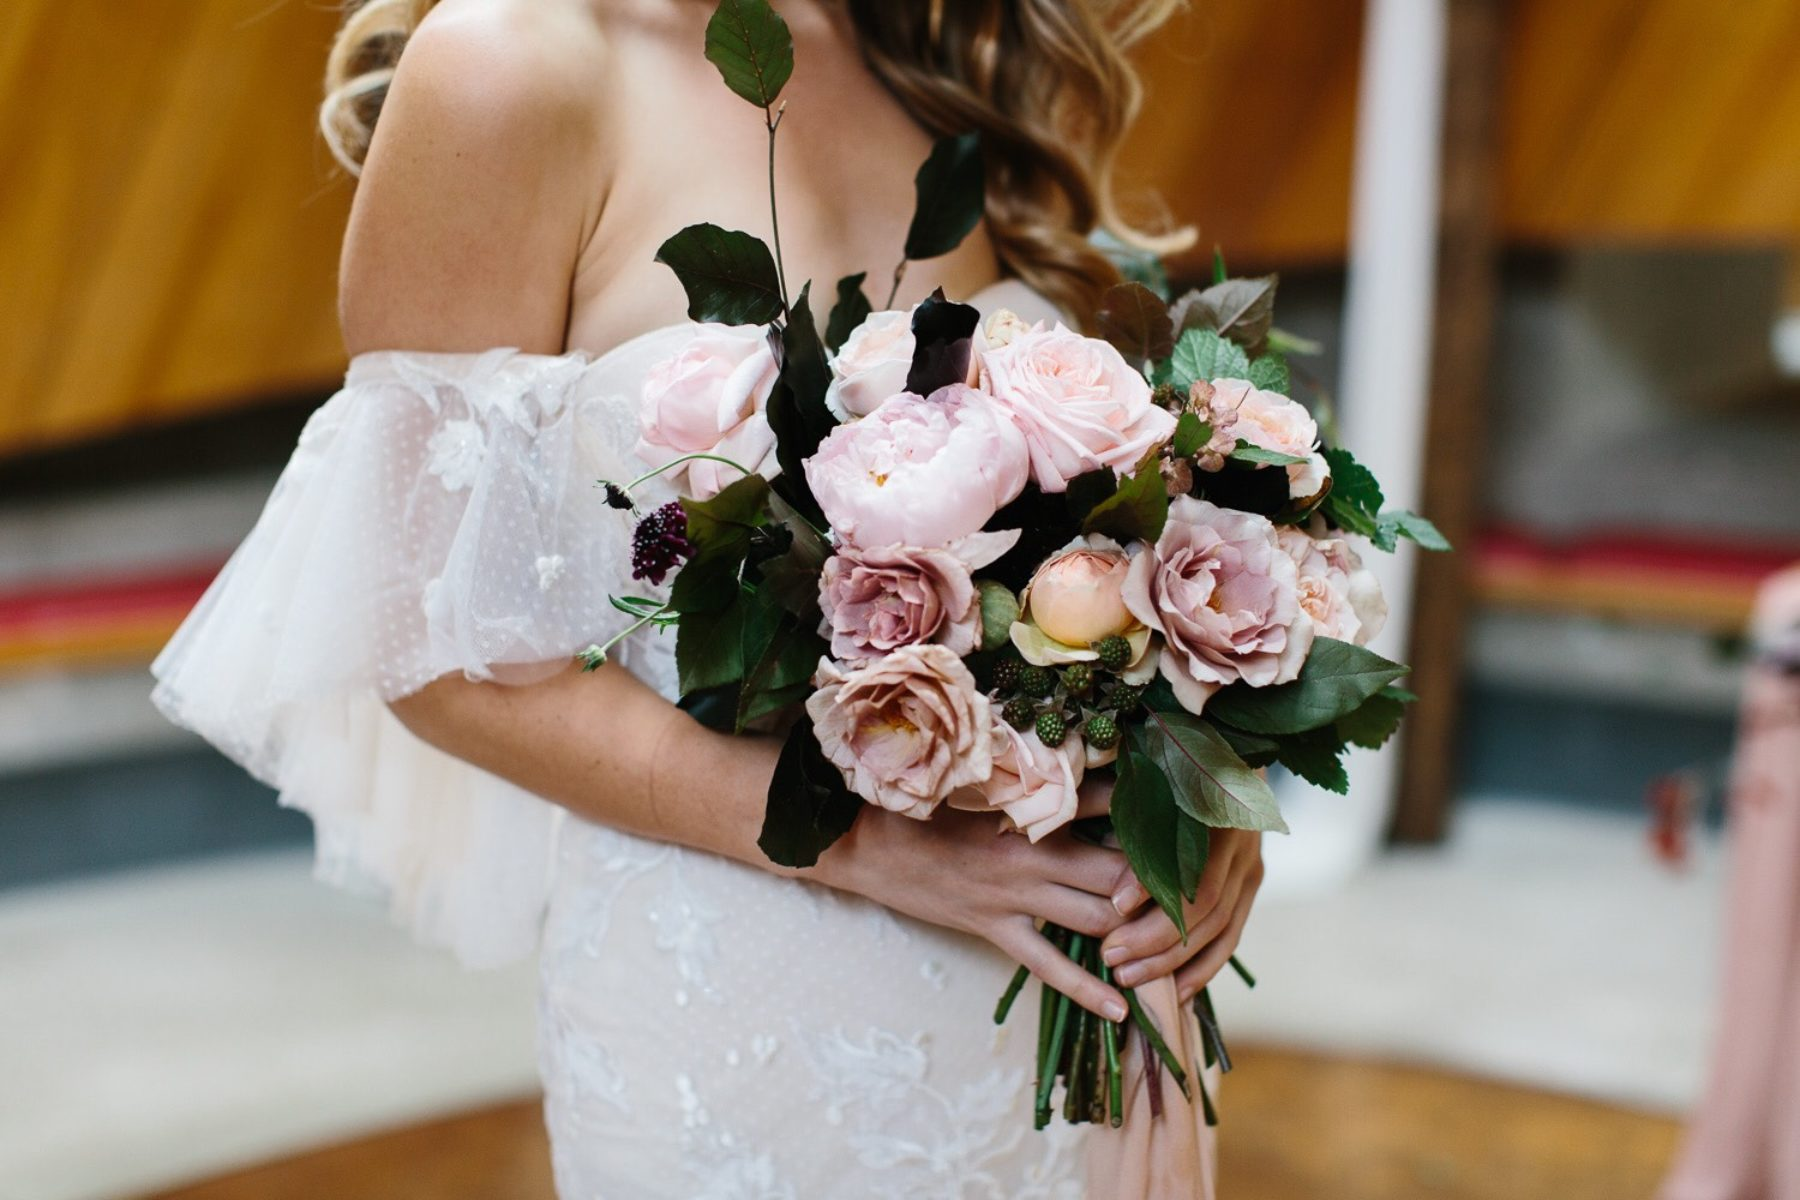 Rven & the Rose - creative wedding florist, Melbourne / Daylesford VIC